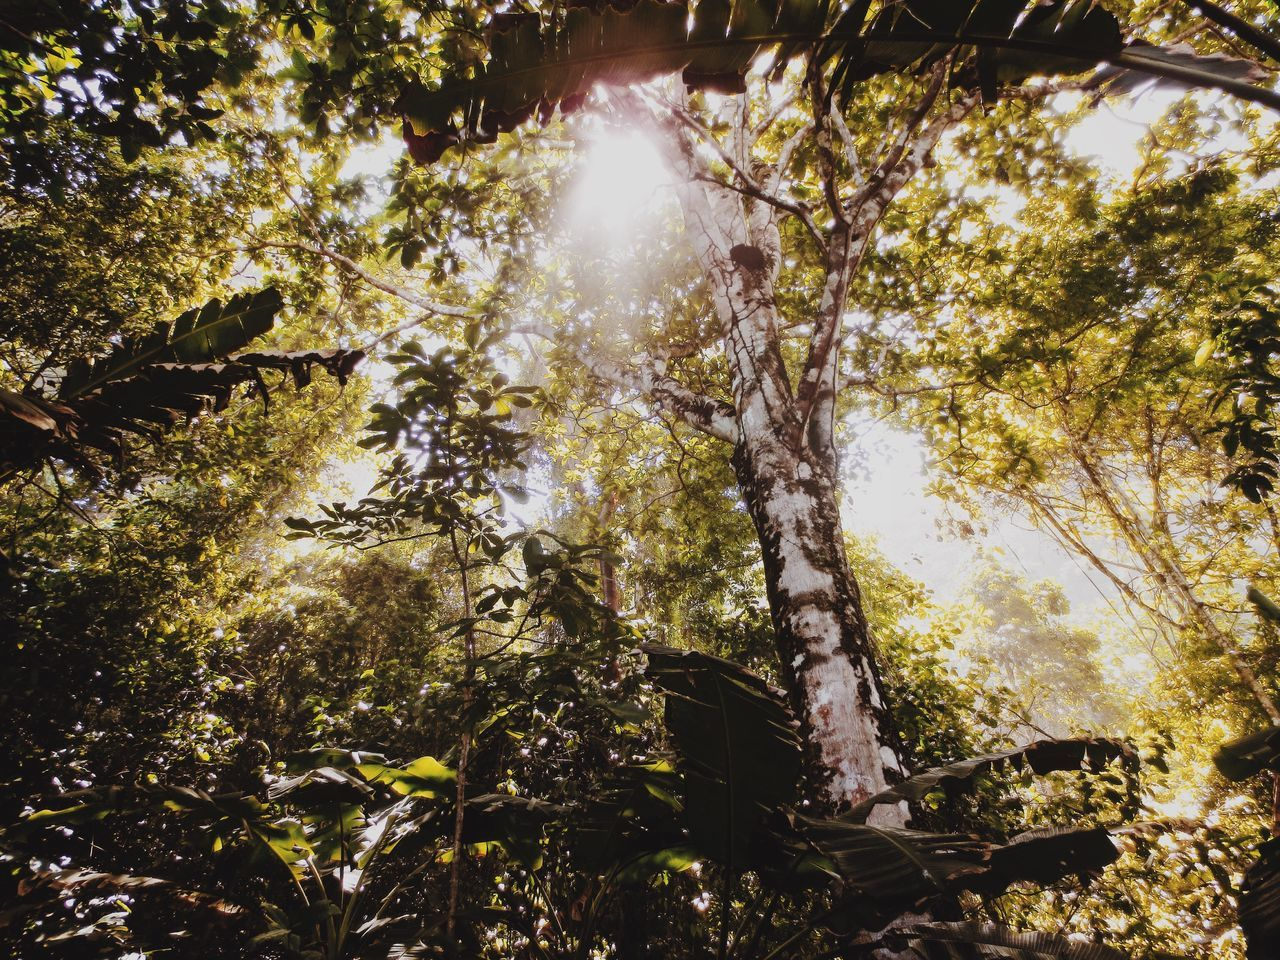 Rainforest Corcovado Rainforest Costa Rica Corcovado Tree Growth Nature Sunlight No People Low Angle View Beauty In Nature Outdoors Day